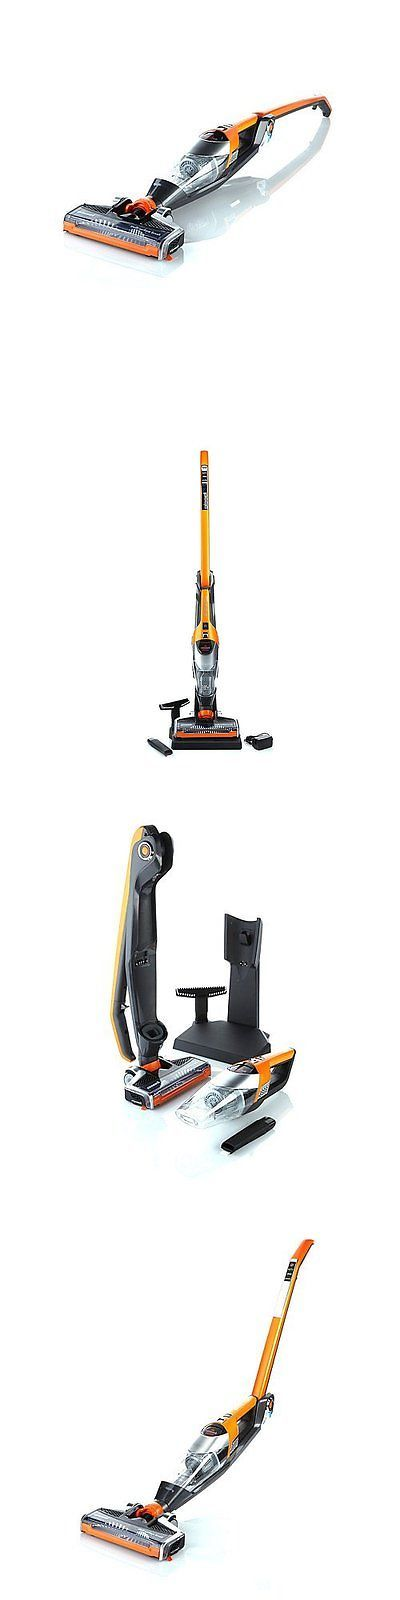 17 Best Ideas About Cordless Vacuum On Pinterest